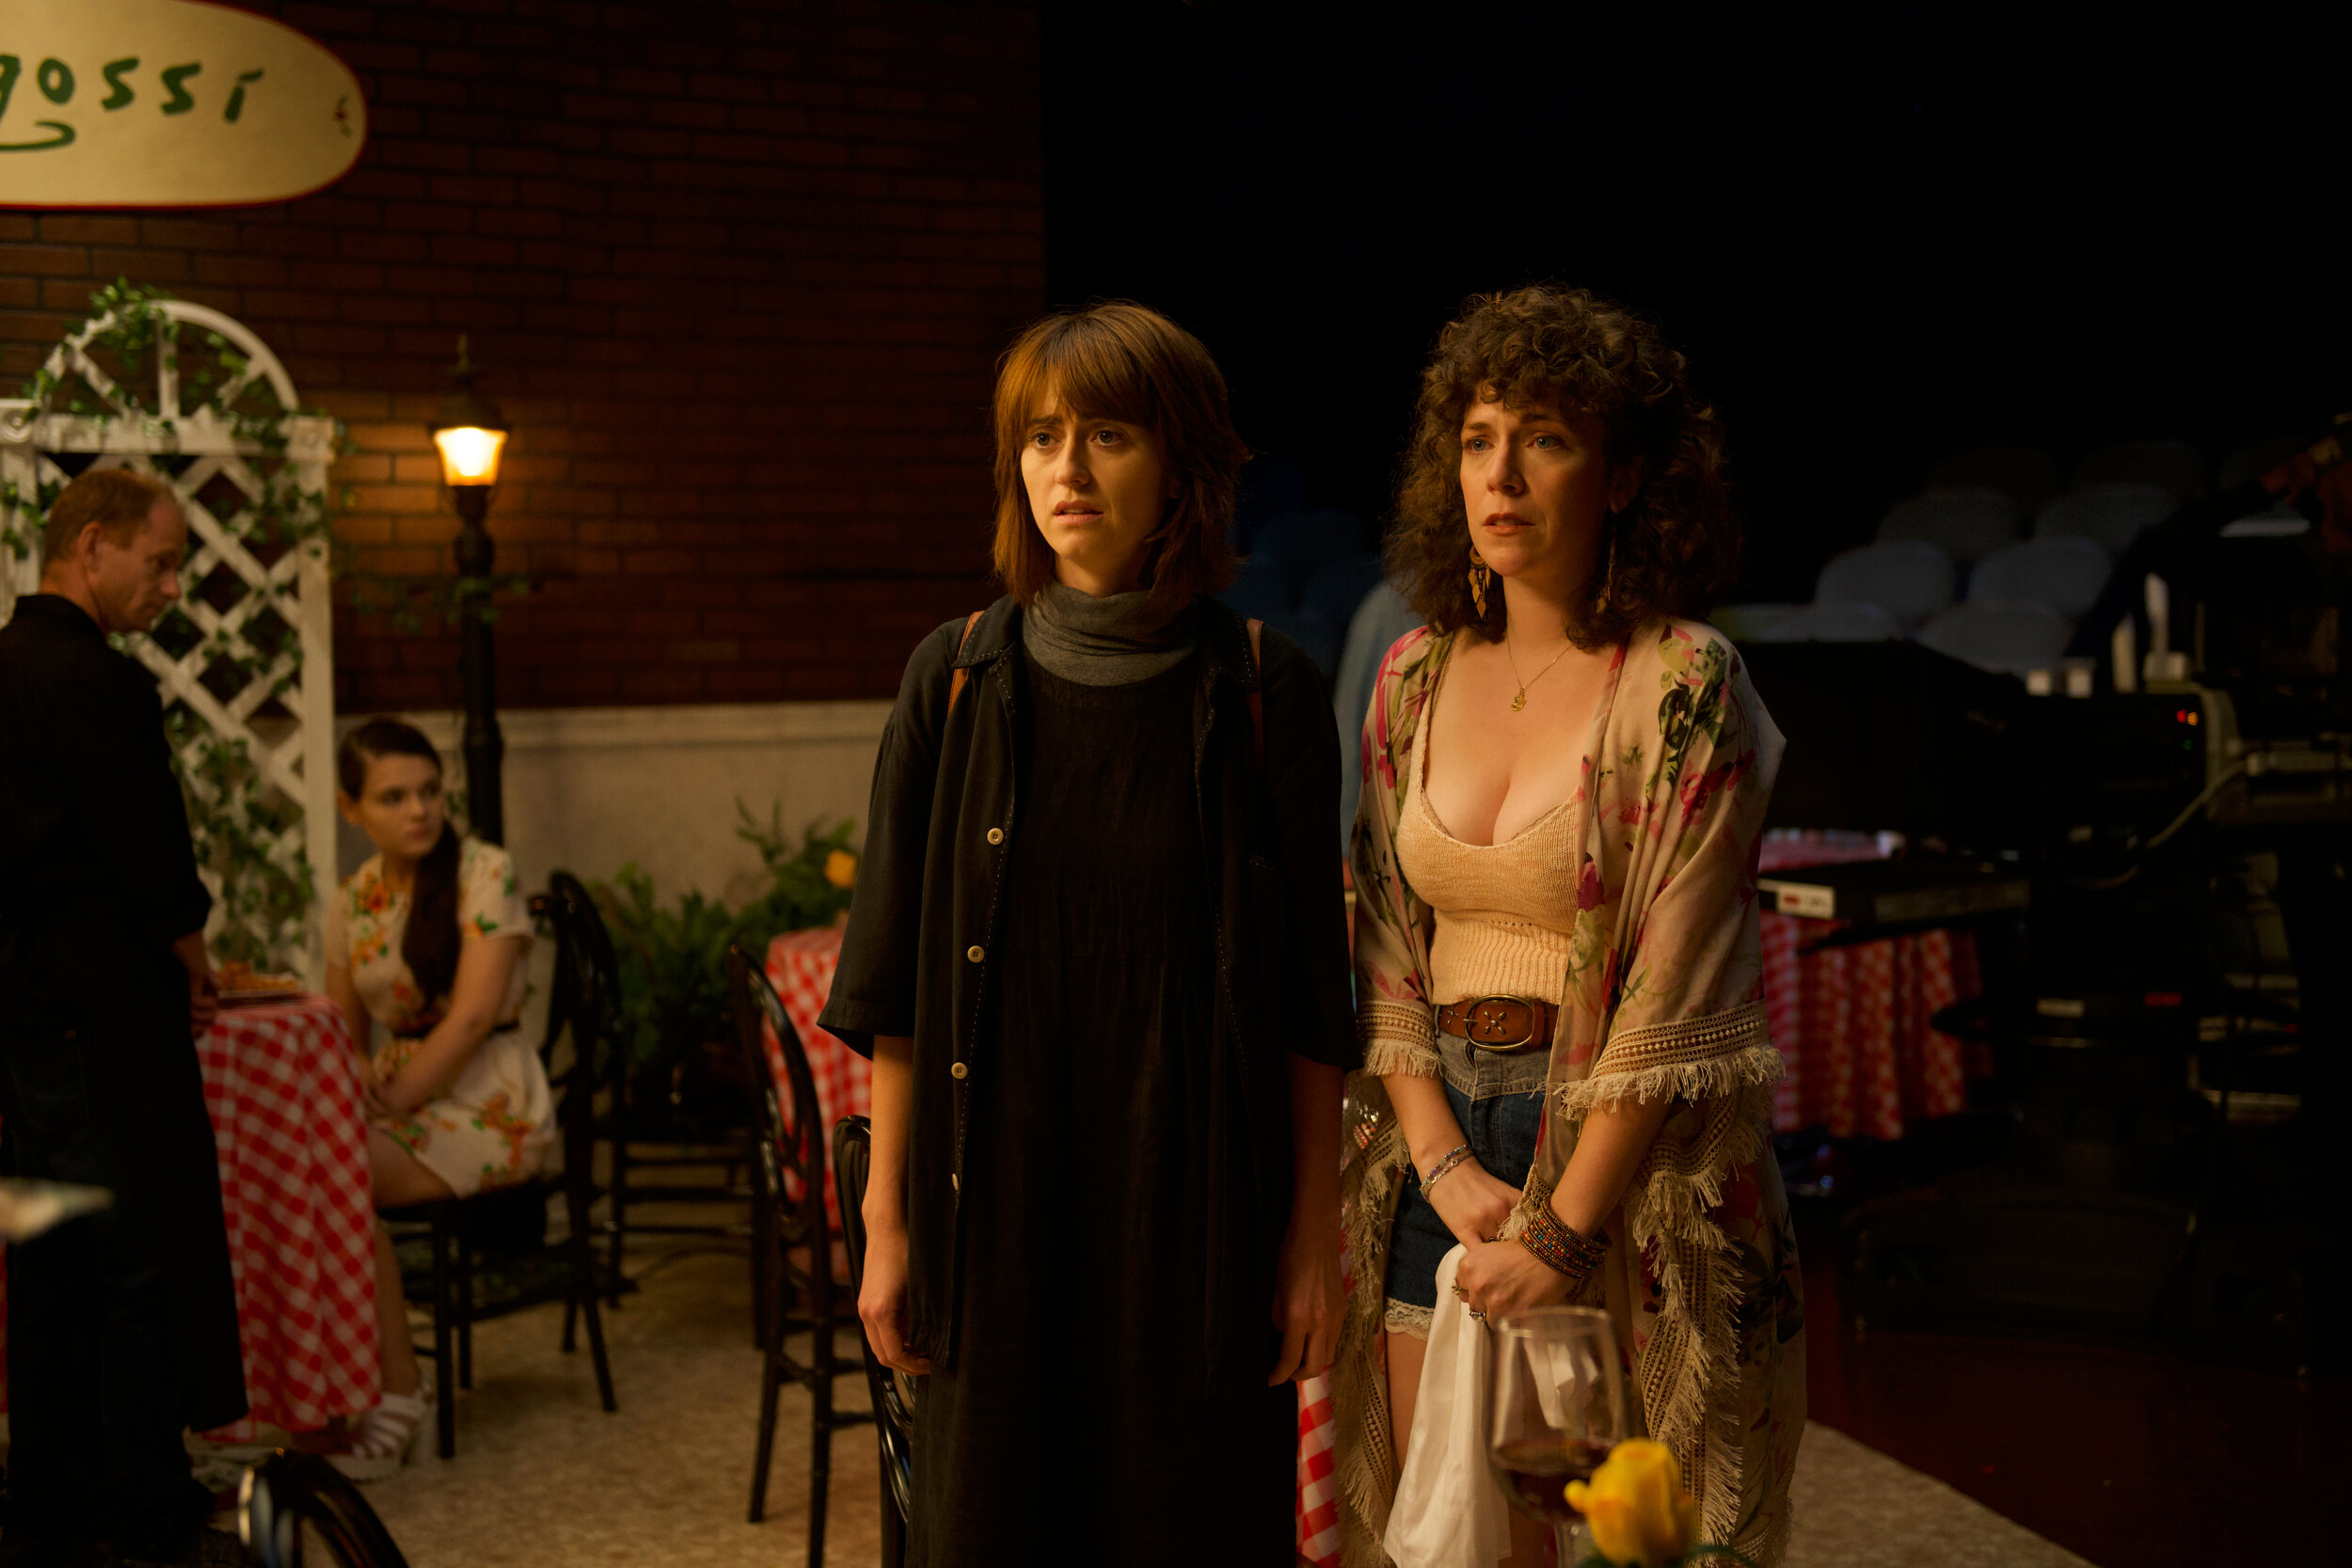 """Sisters Rachel (Hannah Pearl Utt, left) and Jackie (Jen Tullock) discover their mother isn't dead, as they were led to believe, in the comedy """"Before You Know It,"""" directed by Utt and written by Utt and Tullock. (Photo courtesy of 1091 Media.)"""